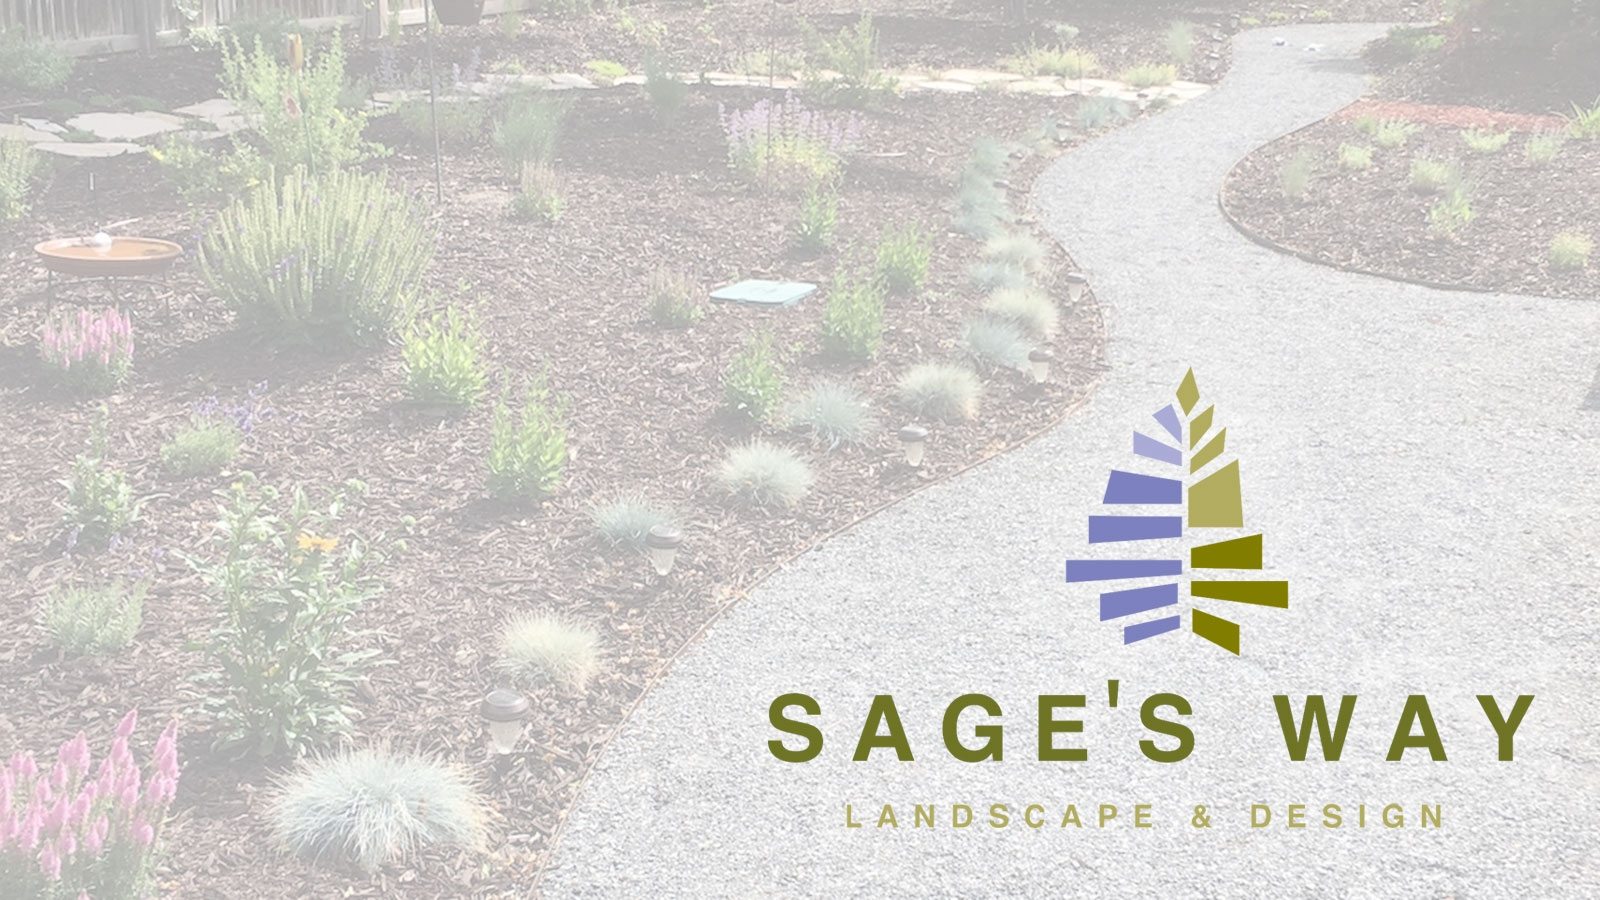 Sage's Way Landscape & Design